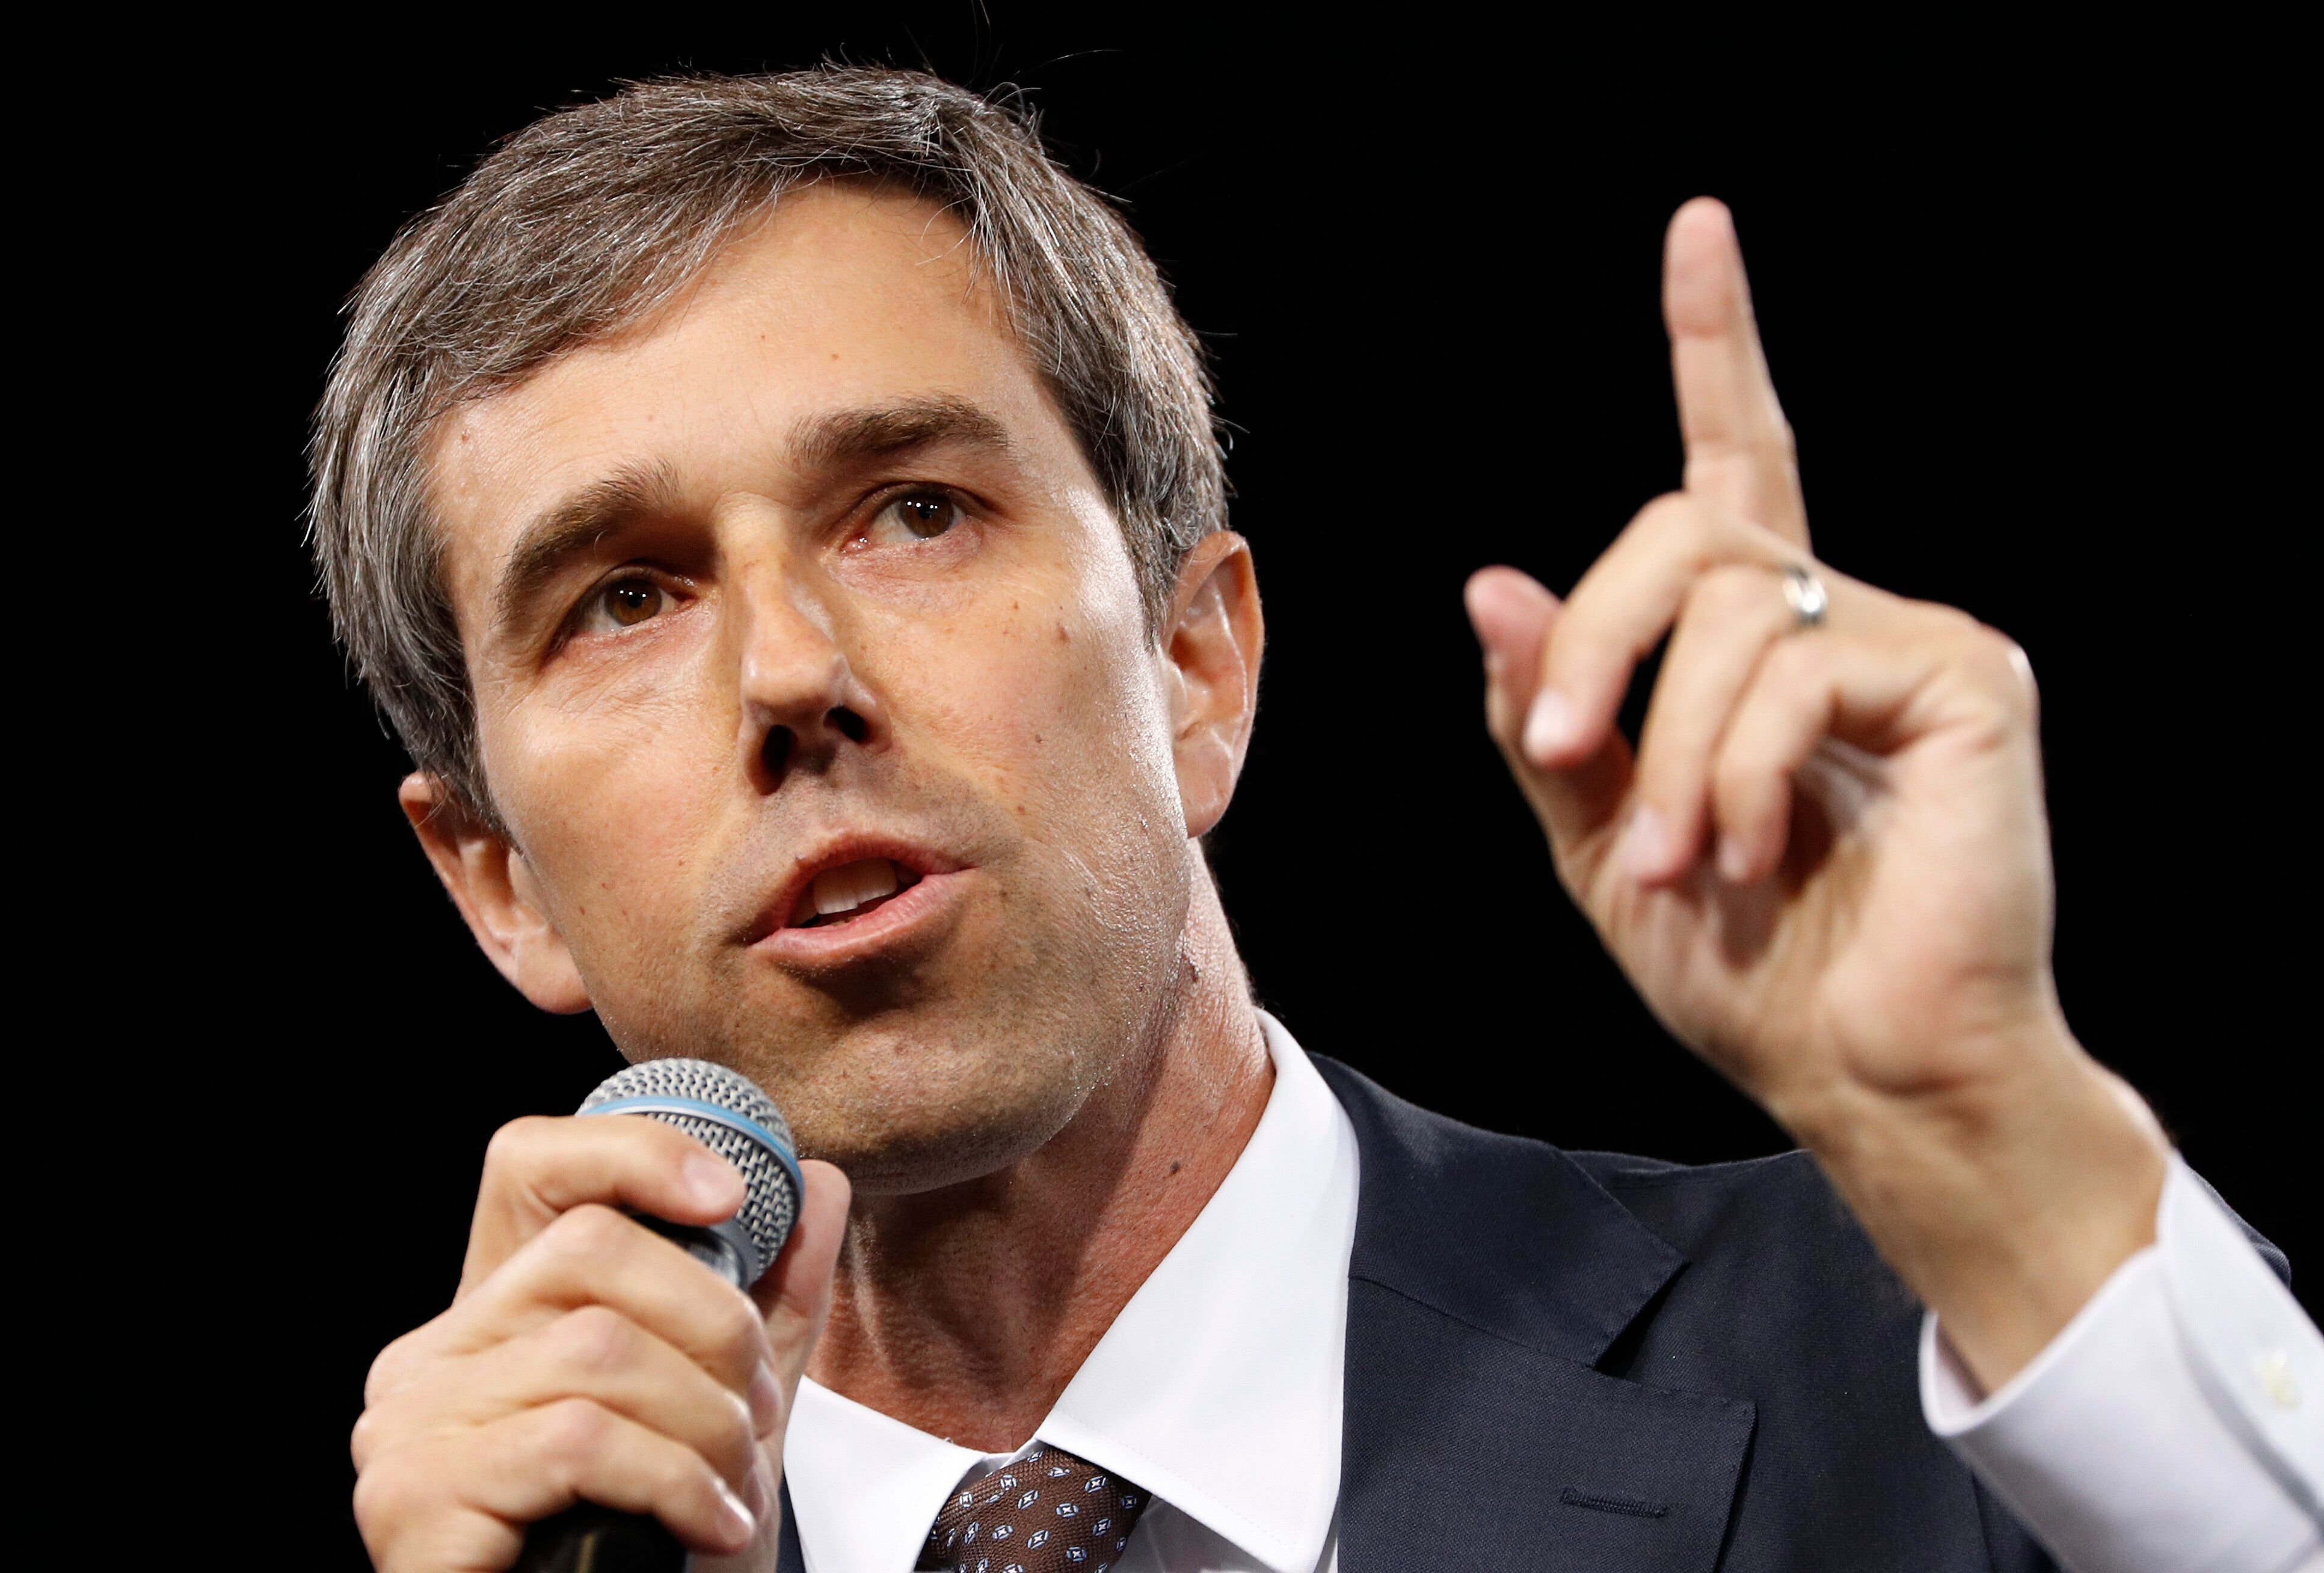 Beto O'Rourke shot to the national stagewith an underdog U.S. Senate race last year that ended in his defeat against Te